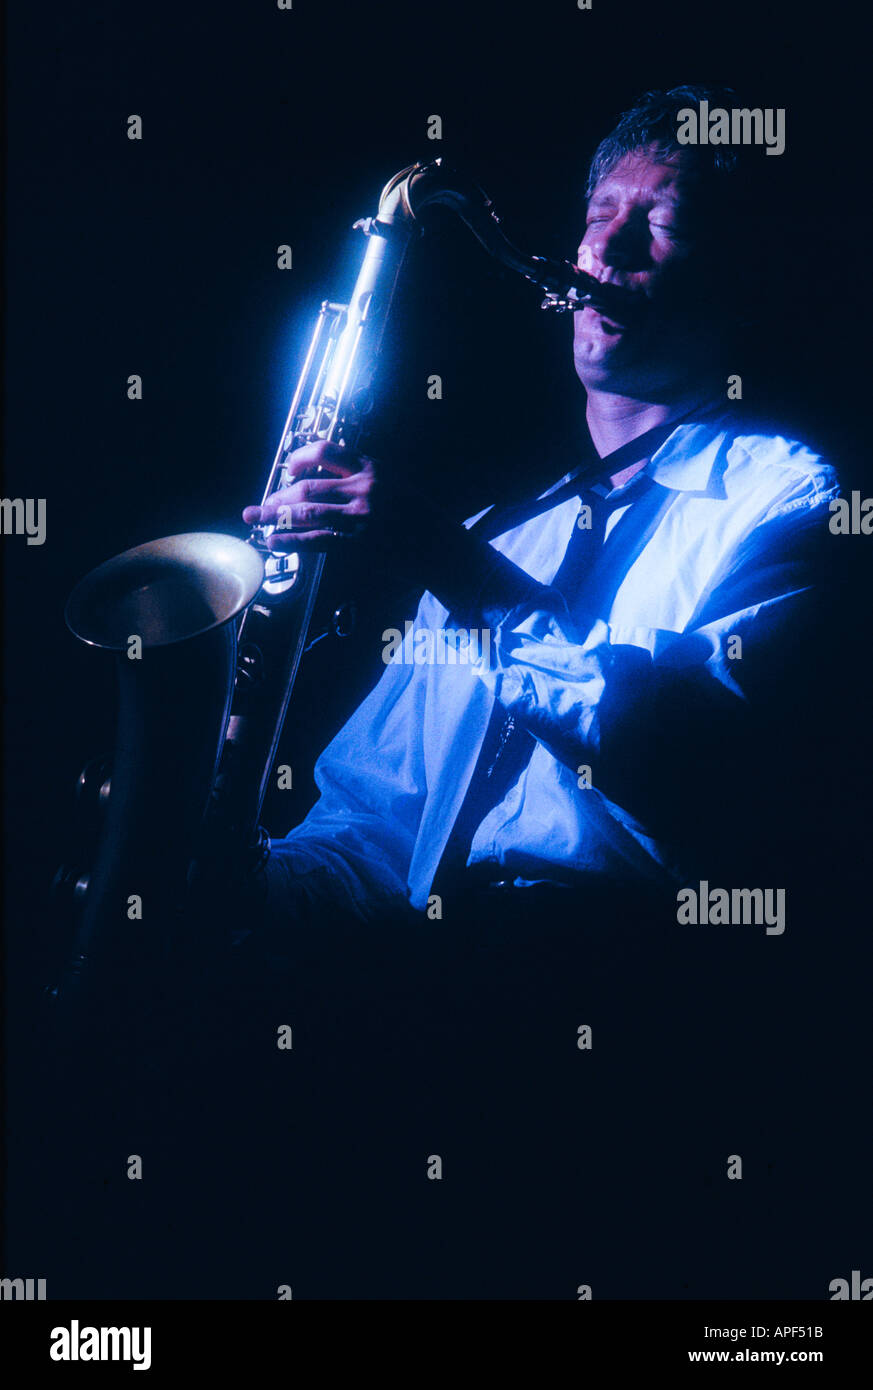 Young man playing tenor saxophone.  Blue light Night club atmosphere - Stock Image